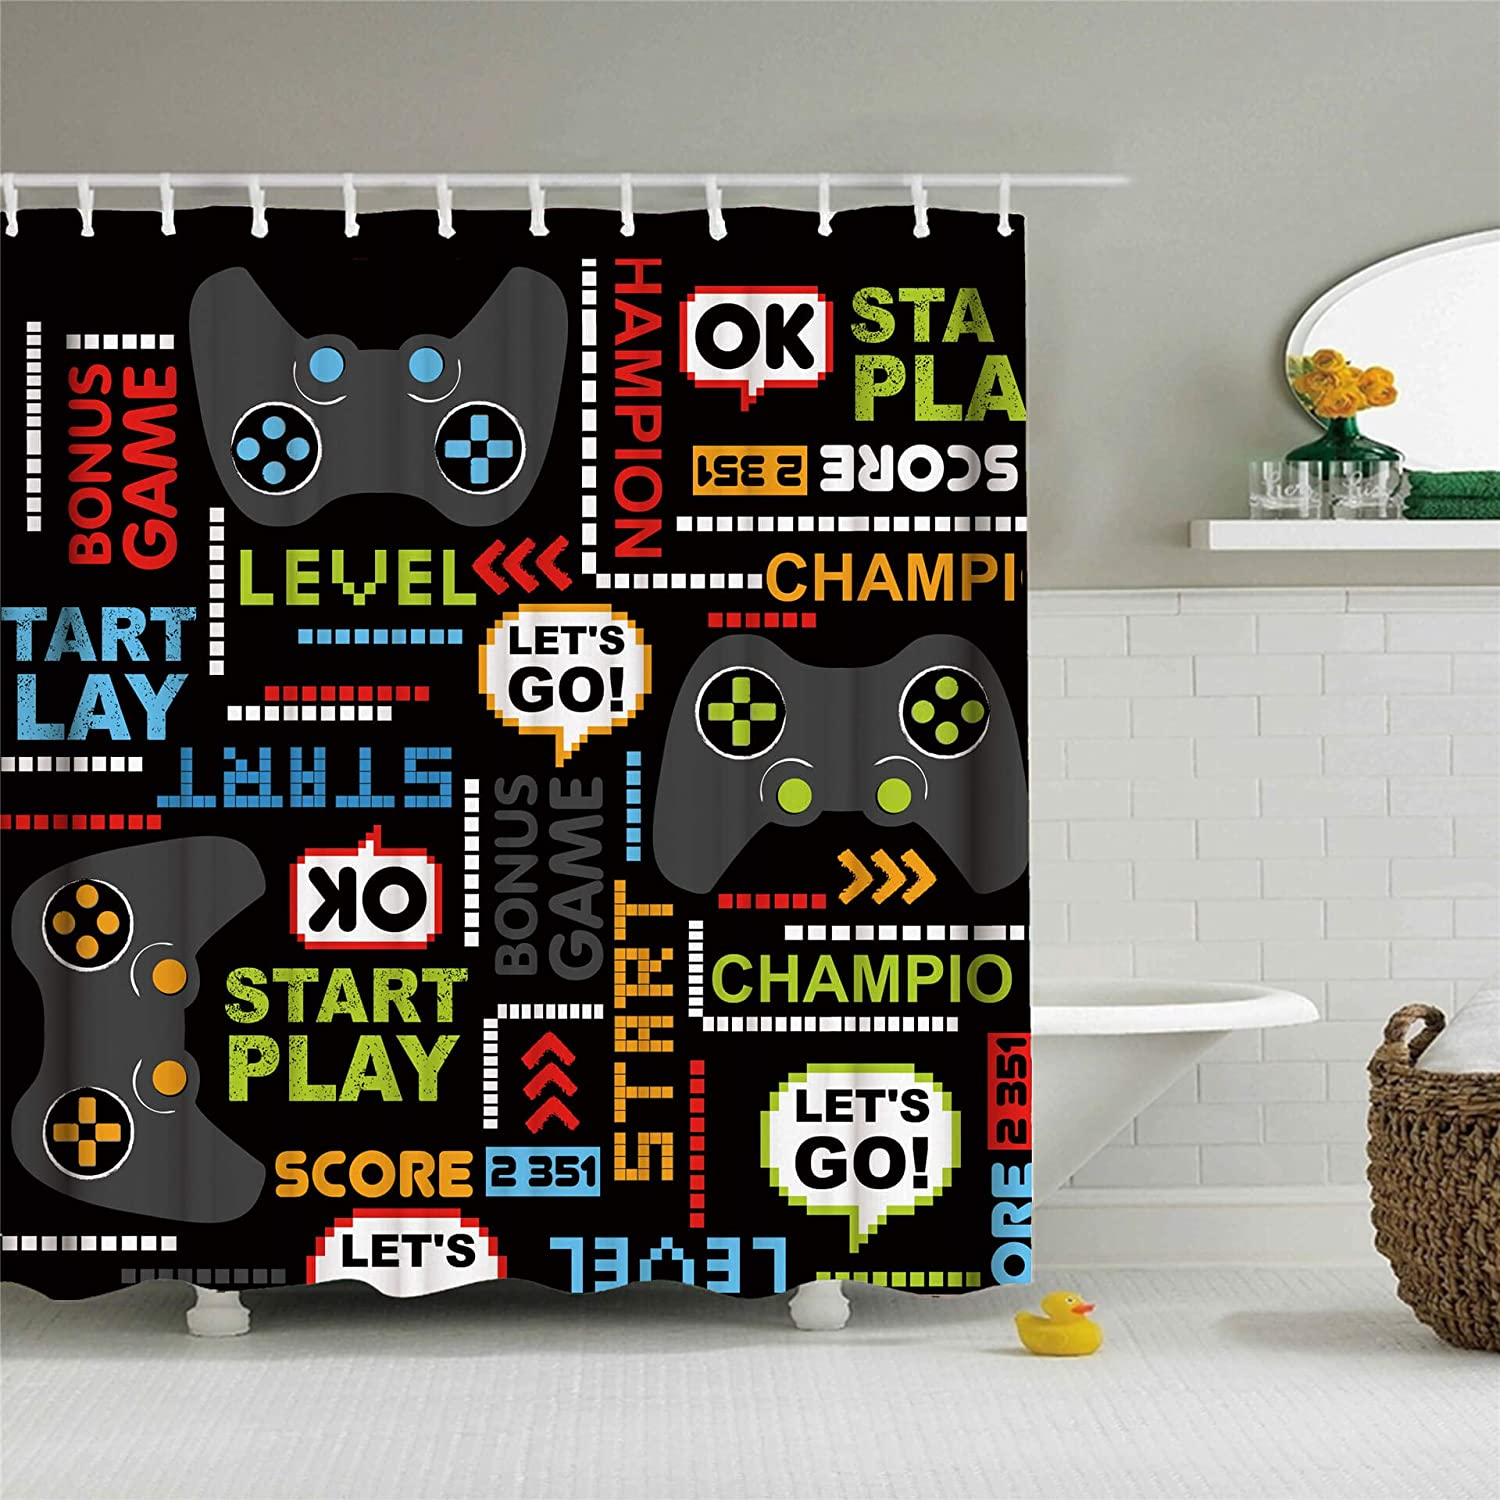 Gaming Shower Curtain Modern Video Games Design Shower Curtain for Kids Boys Girls Teens Waterproof Polyester Fabric Bathroom Decor Set with 12 Hooks, 72x72 Inch